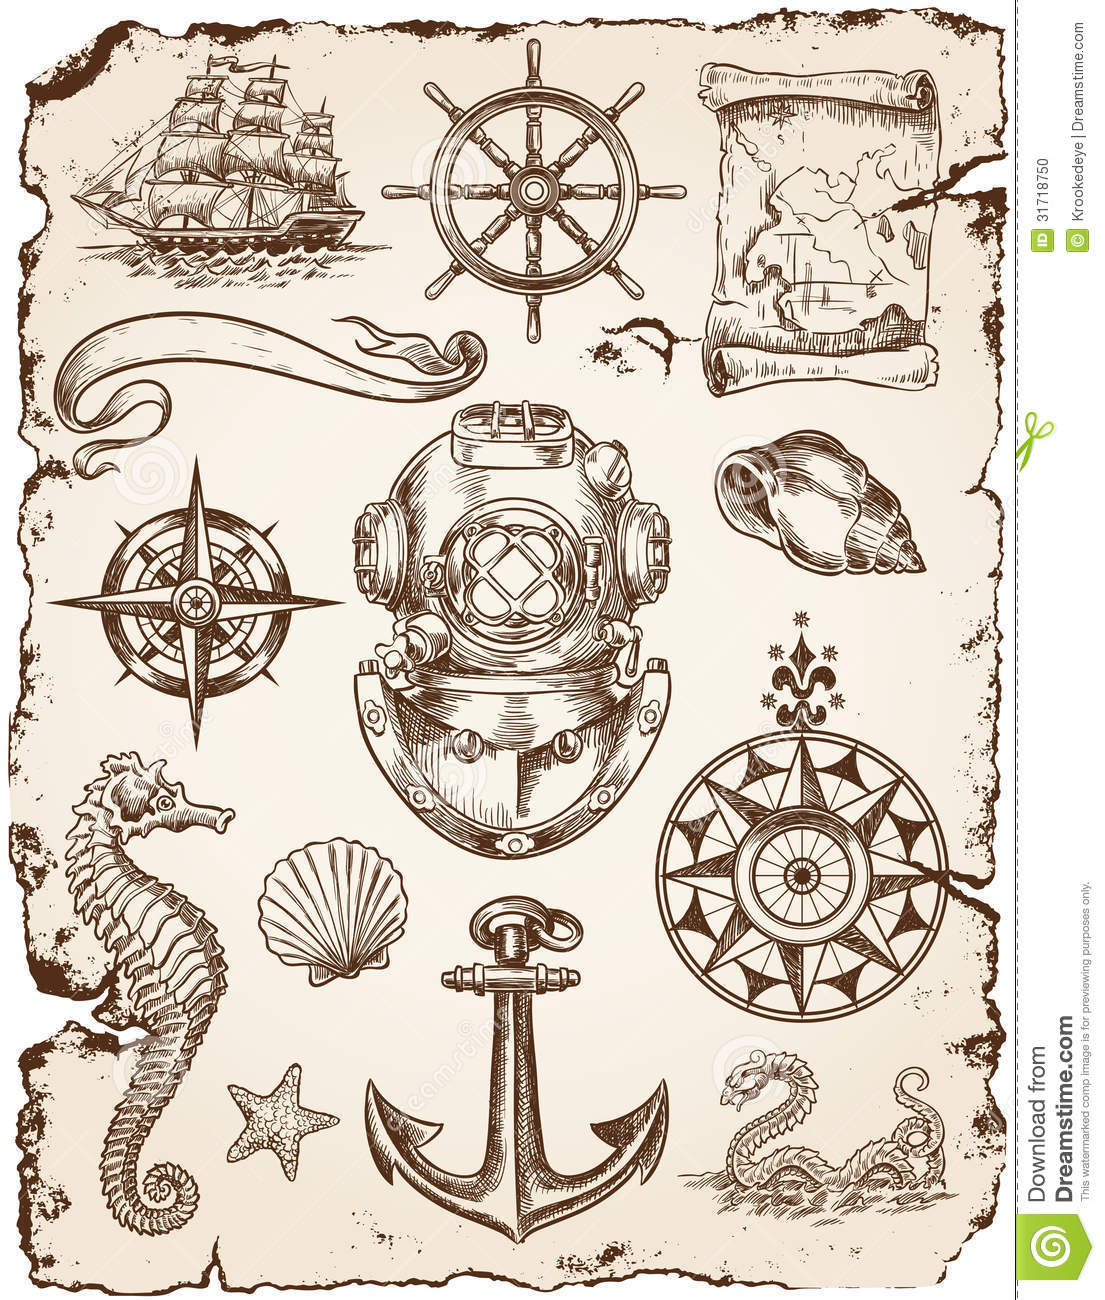 More similar stock images of ` Nautical Vector Illustration Set `